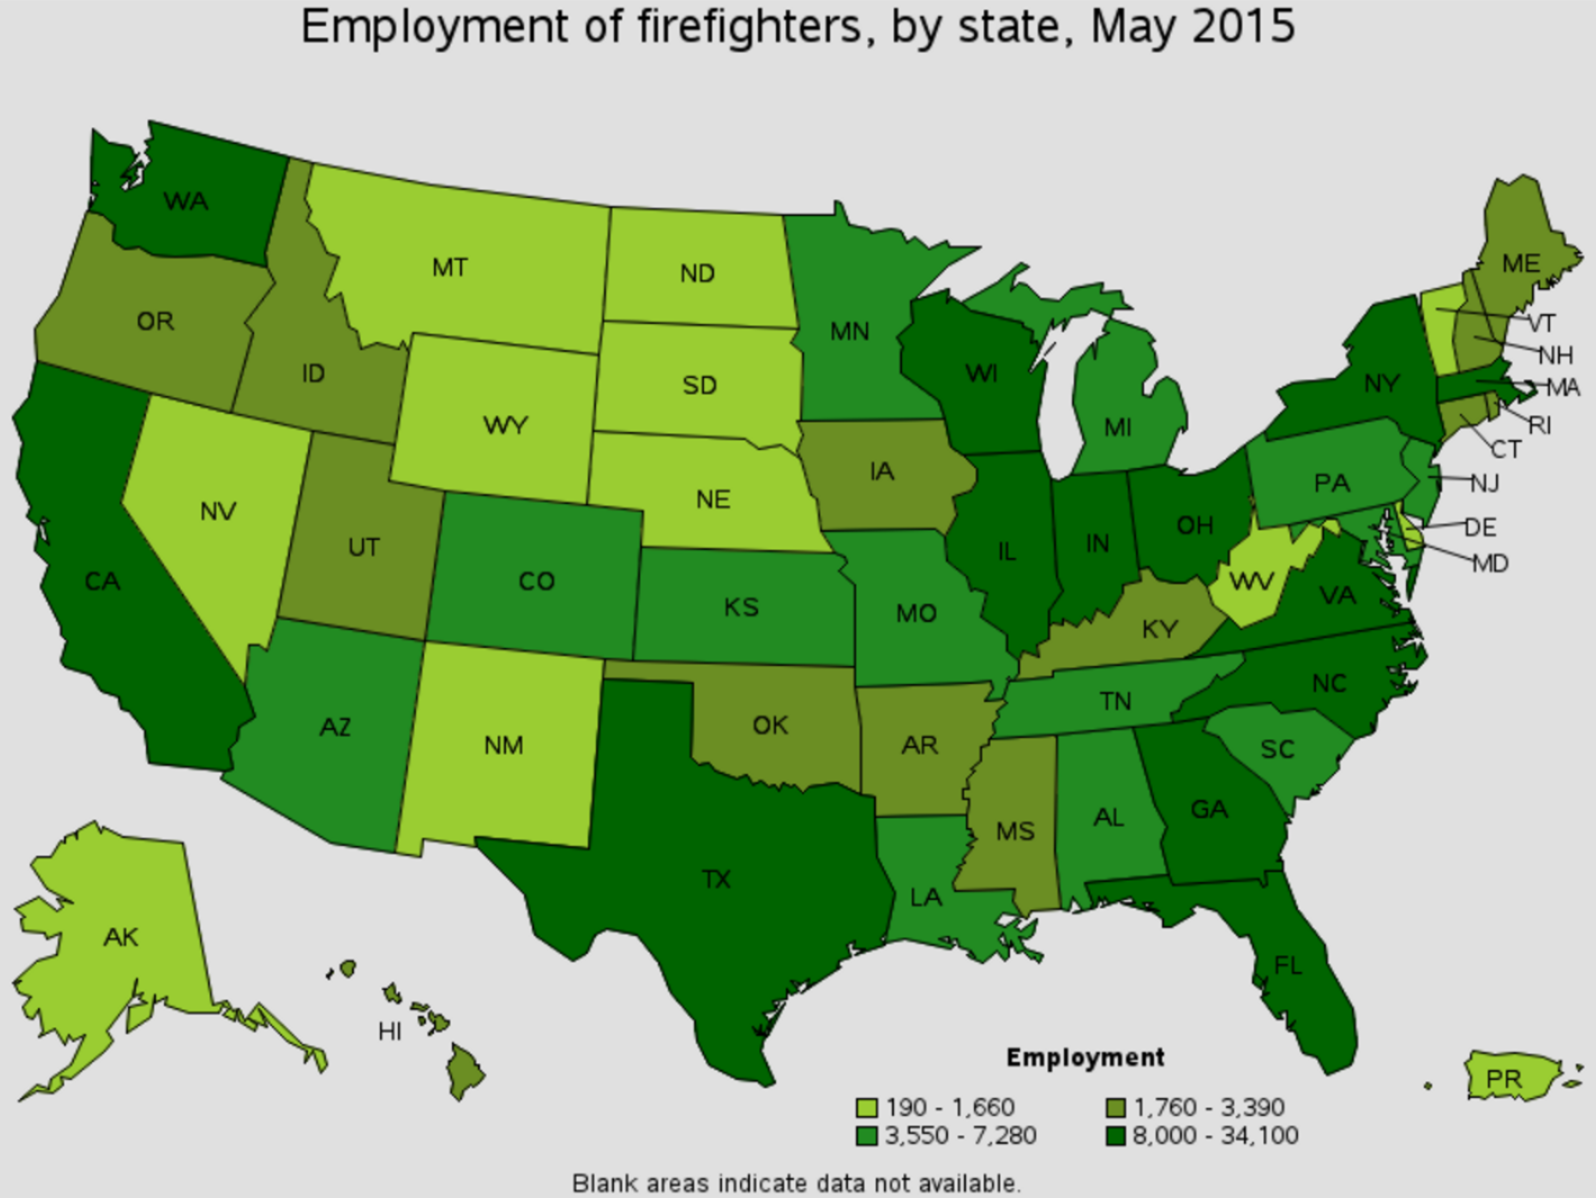 firefighter job outlook by state Vernon Alabama